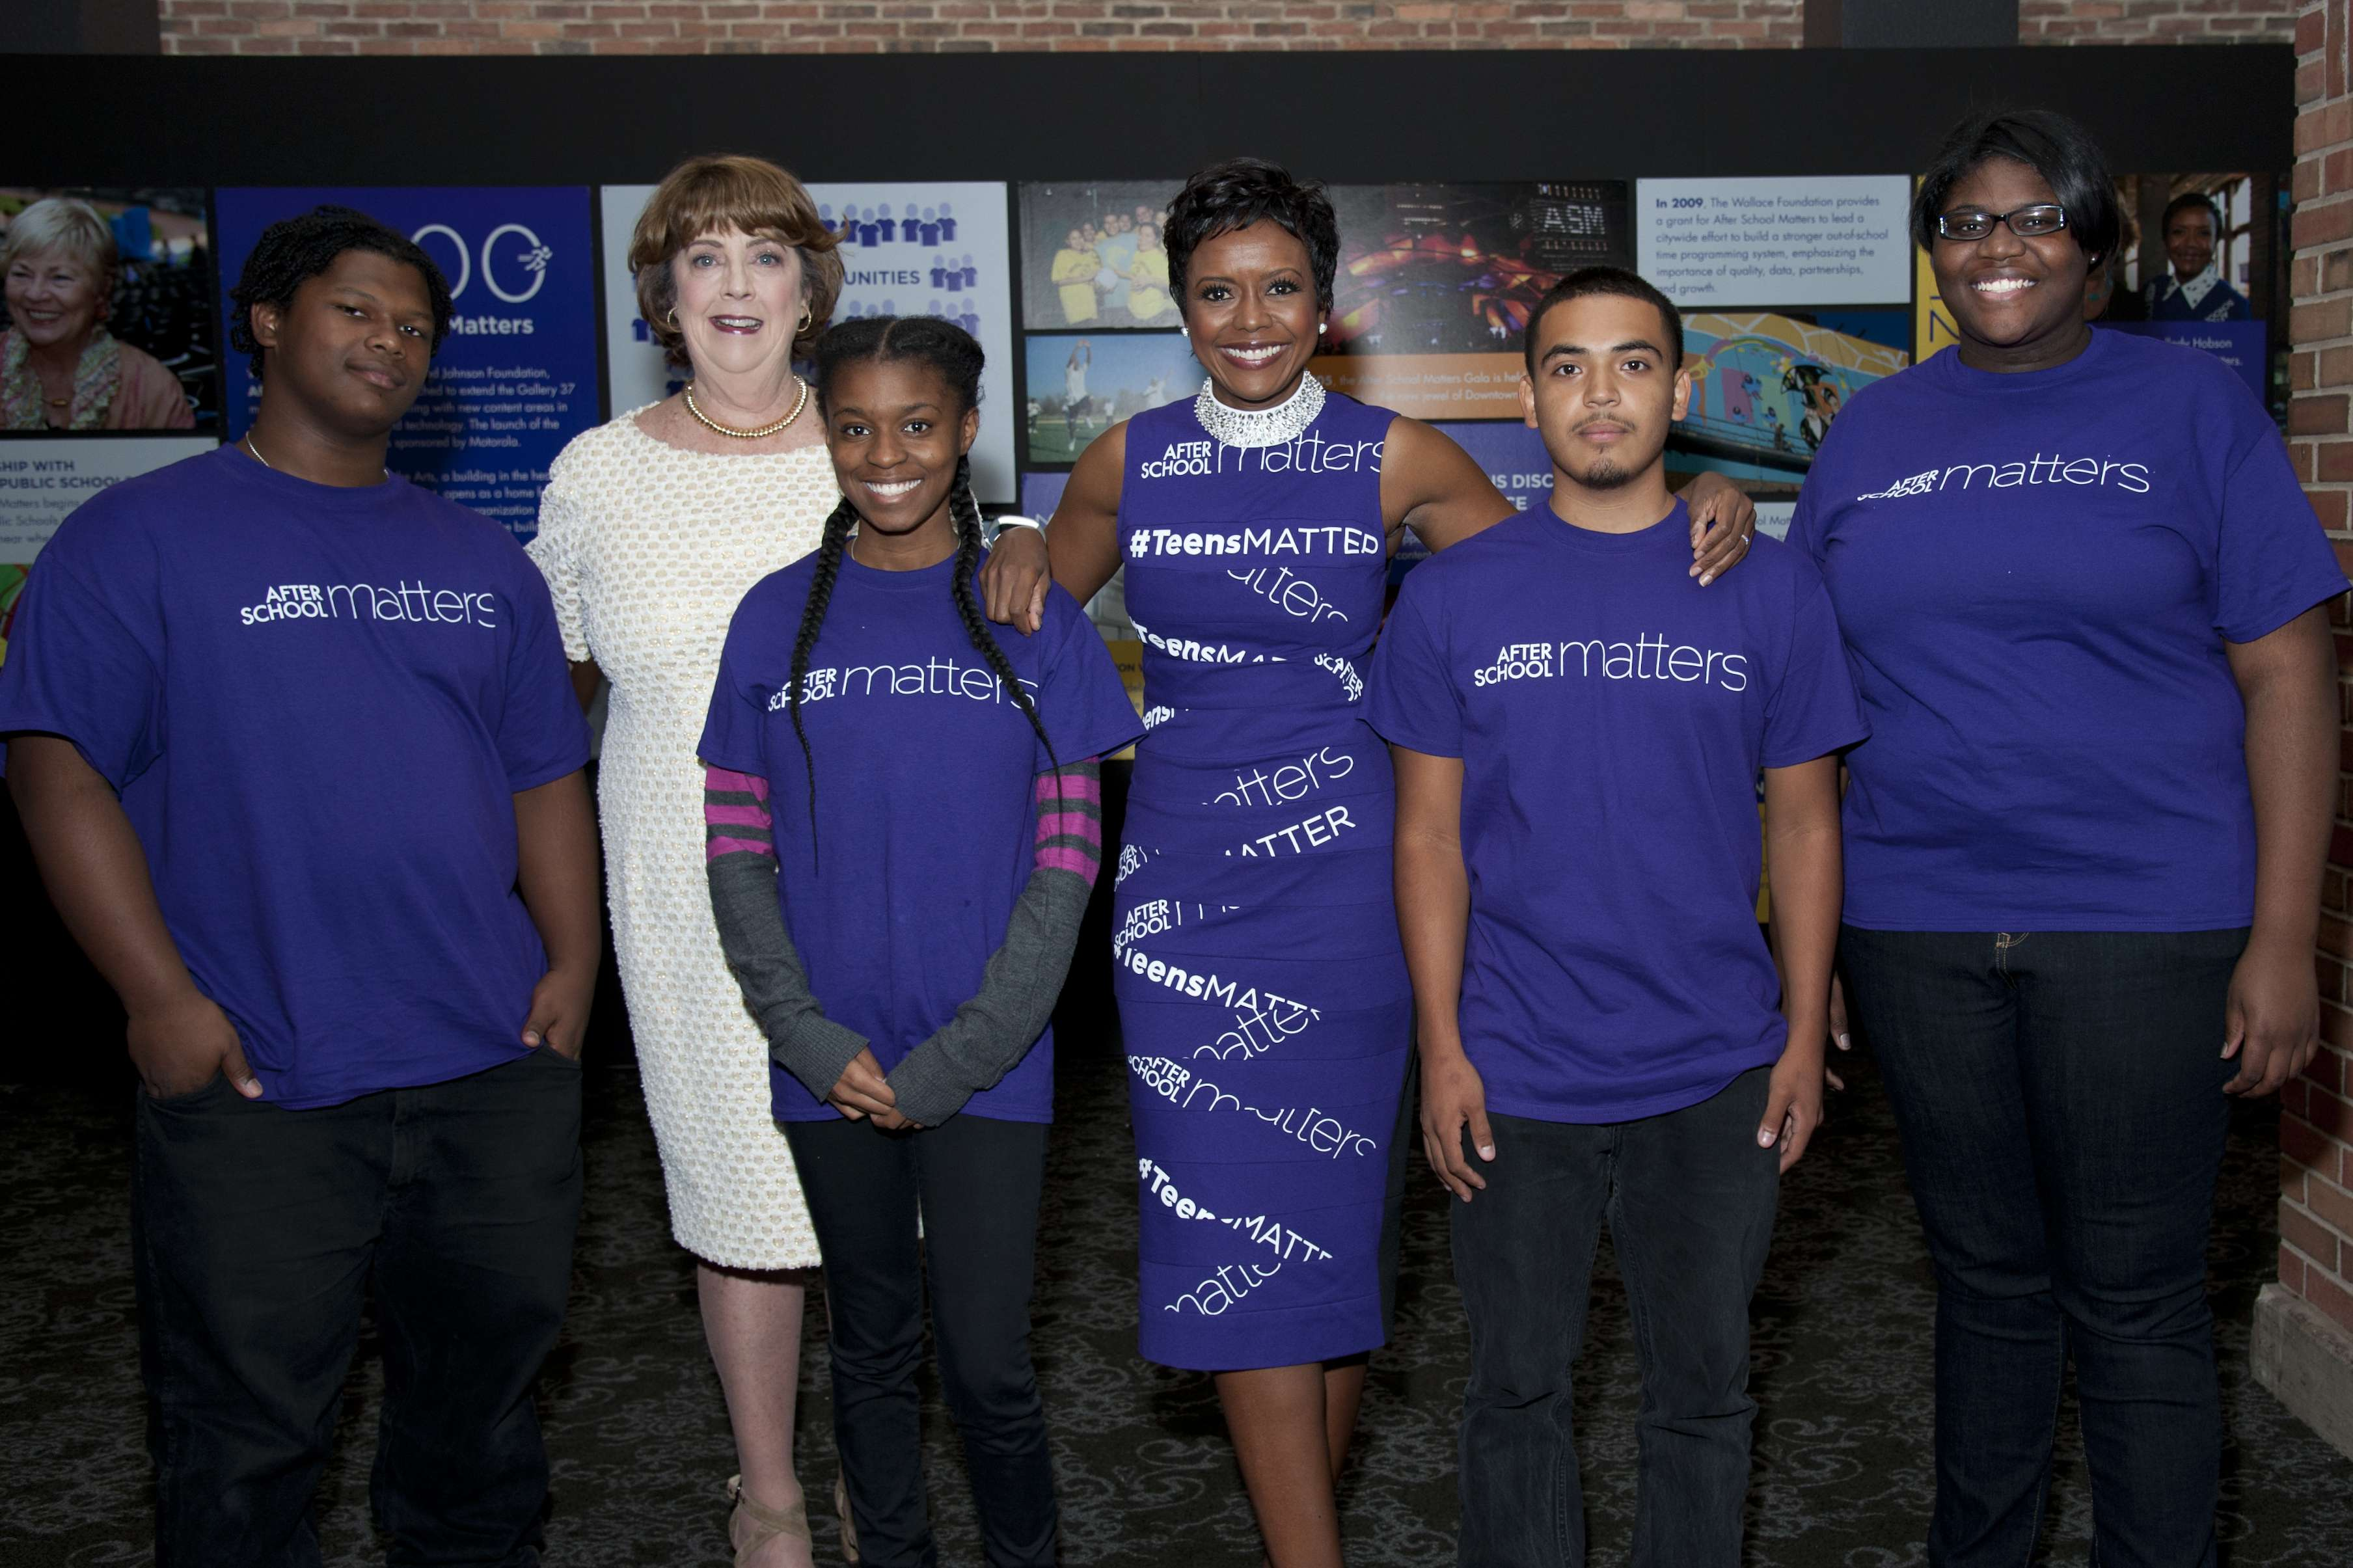 <p>Chicago teens Alex, Jada, Juan, and Dorinda from After School Matters programs in science, technology and art joined by CEO Mary Ellen Caron and Board Chair Mellody Hobson at the After School Matters Annual Gala on September 19, 2016 at Navy Pier. Photo credit: Robert Carl</p>